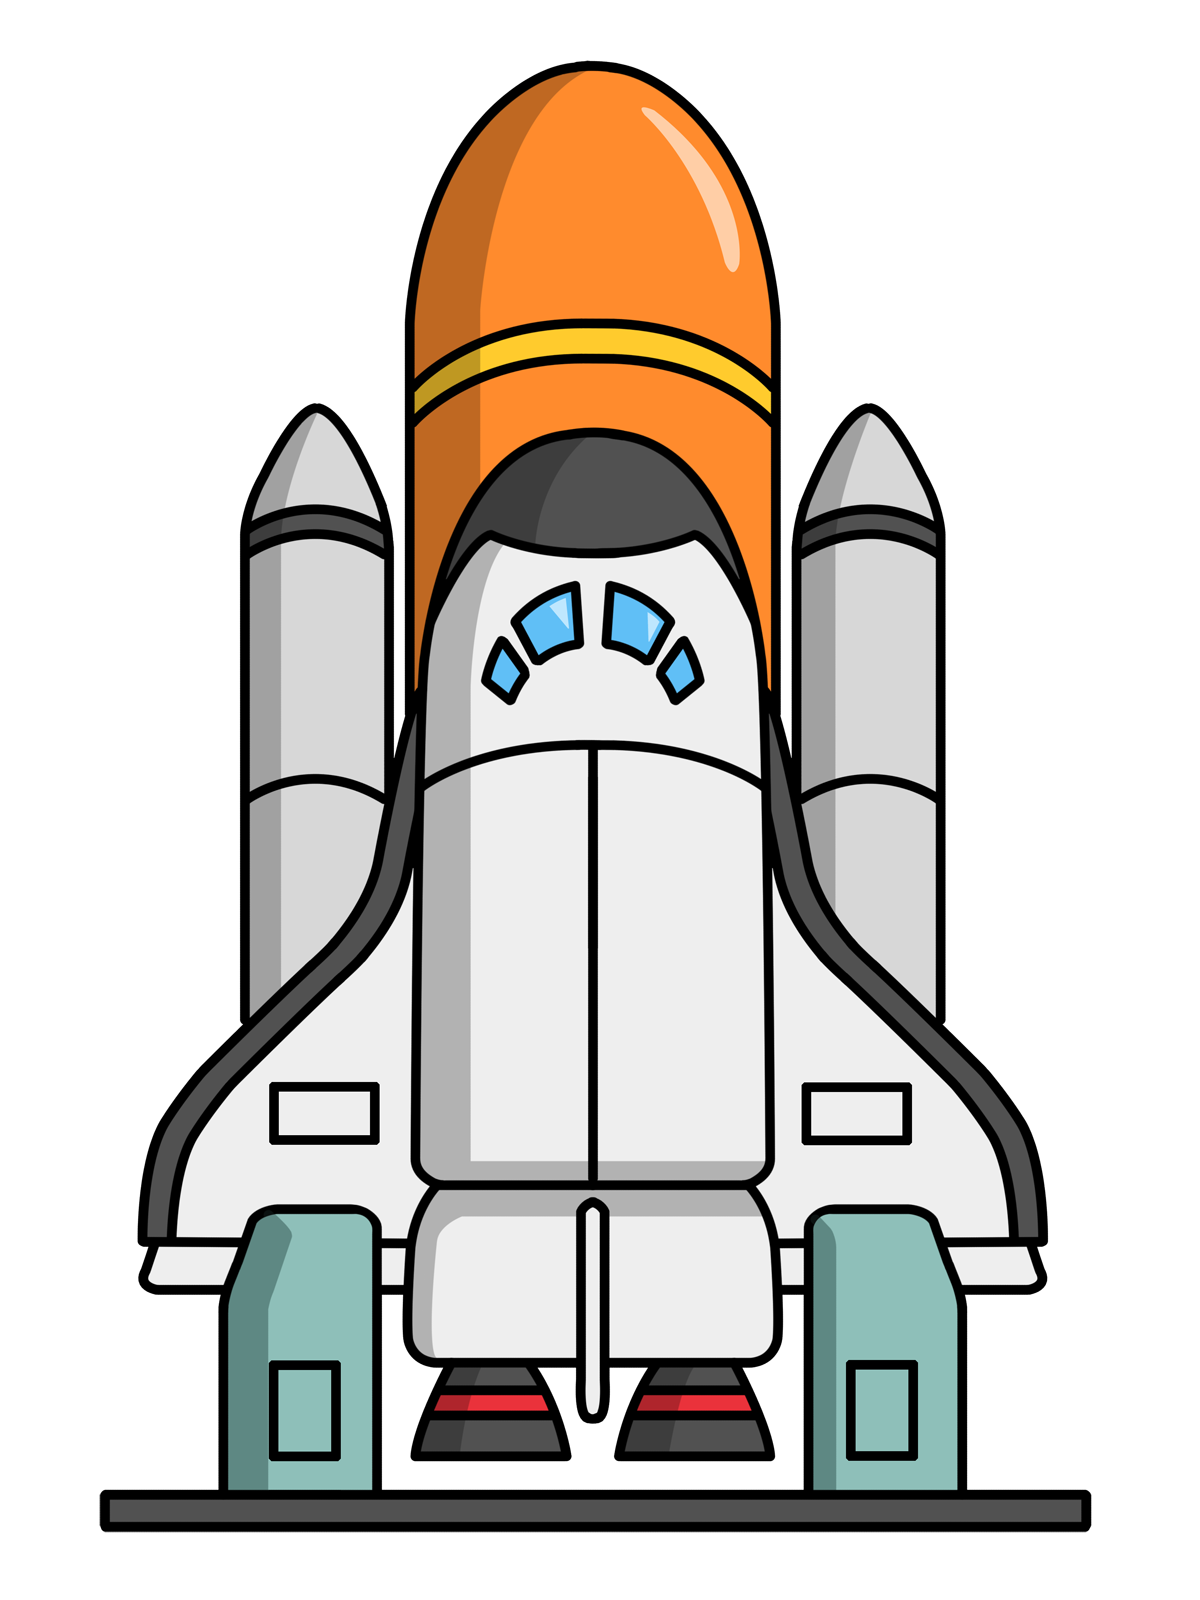 Rocket Ship Clip Art Free | Cartoon Rocketship Space Alien Pla ...